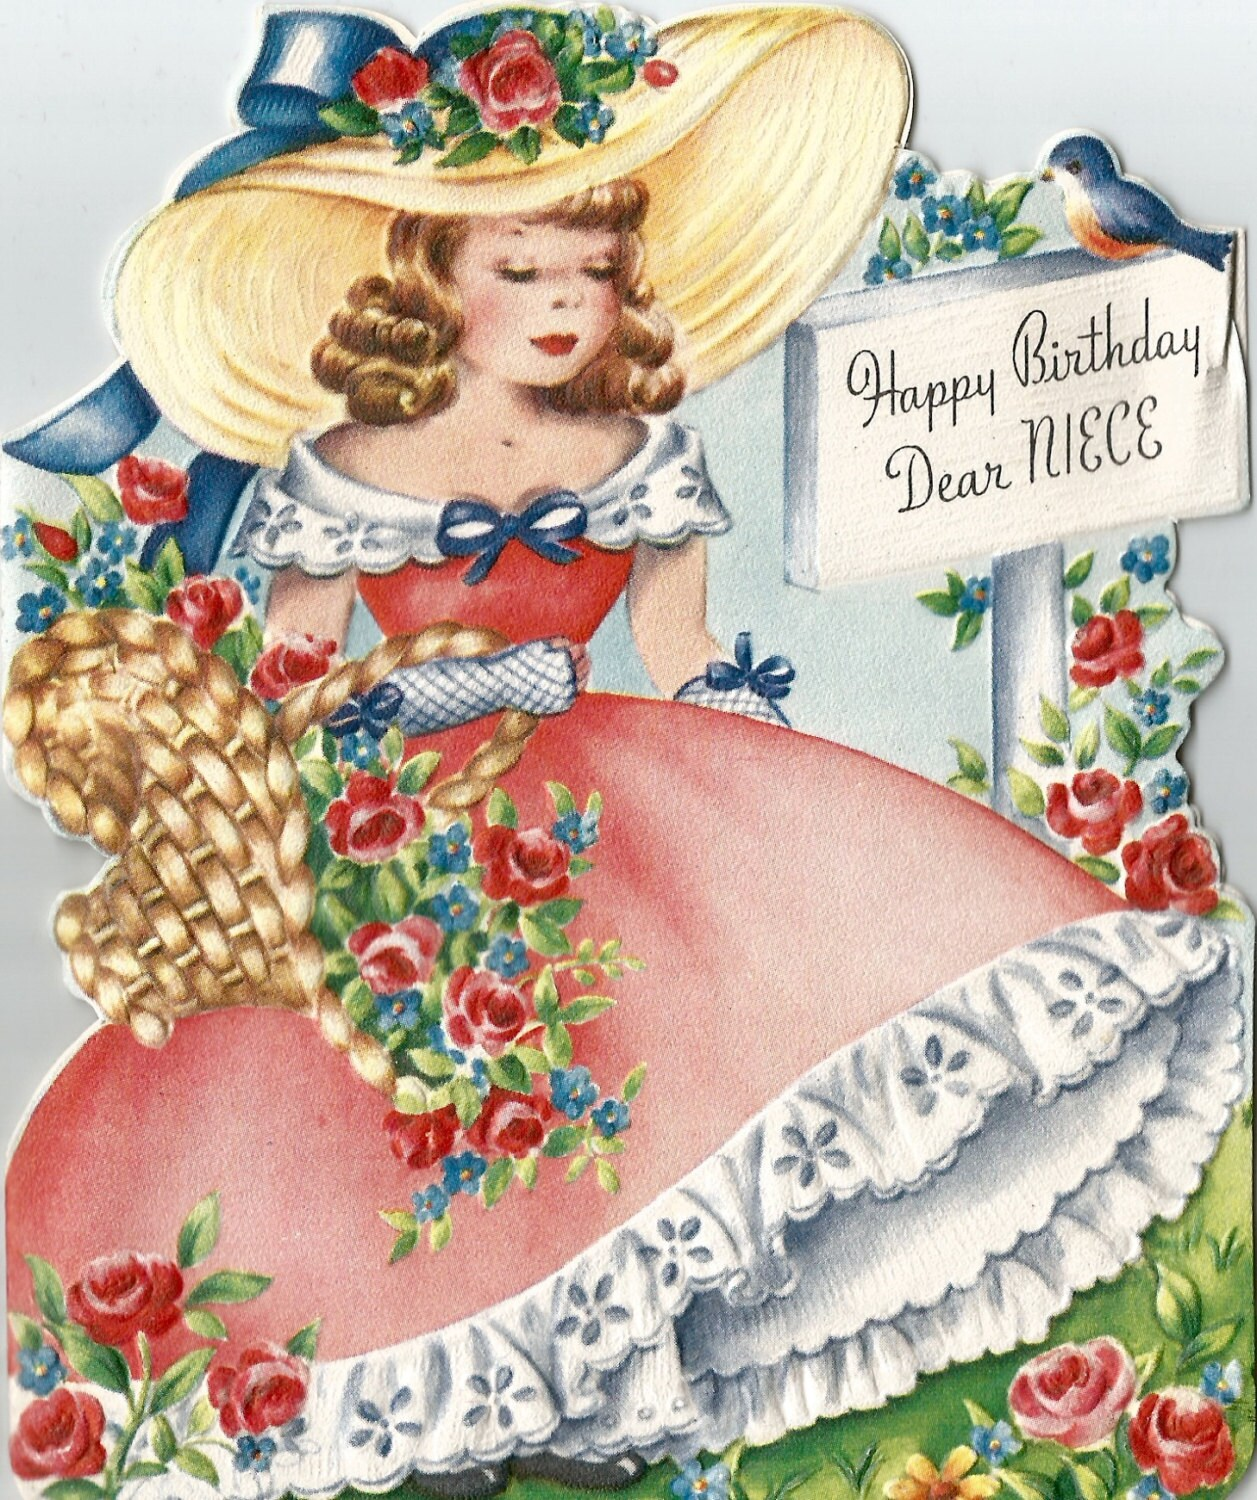 Birthday Flowers For Niece: Vintage Niece Birthday Card Flowers Floral Girl In Gown Bonnet